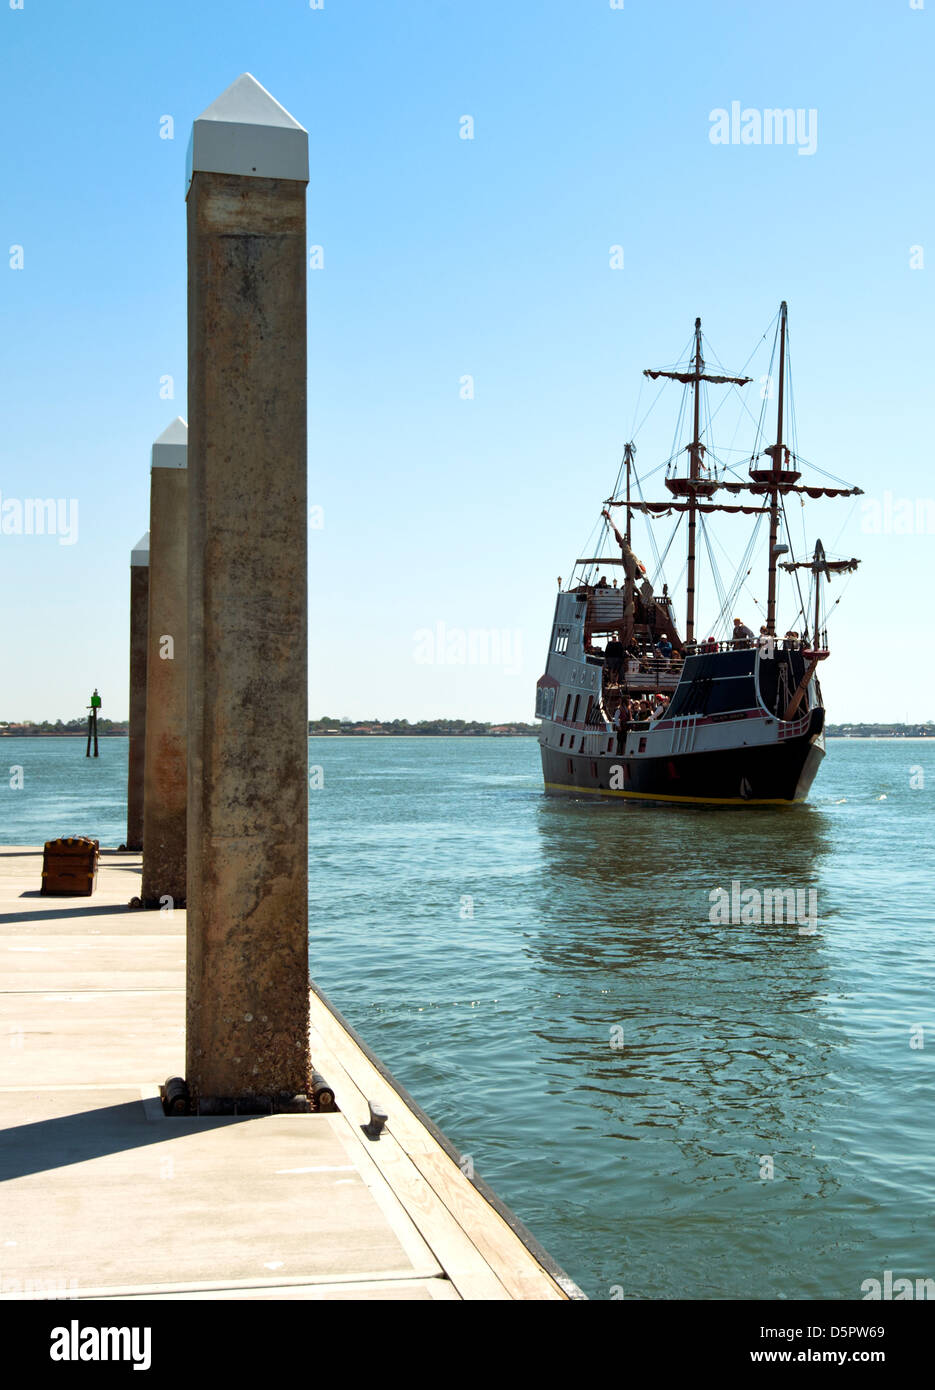 pirate ship boat stock photos u0026 pirate ship boat stock images alamy